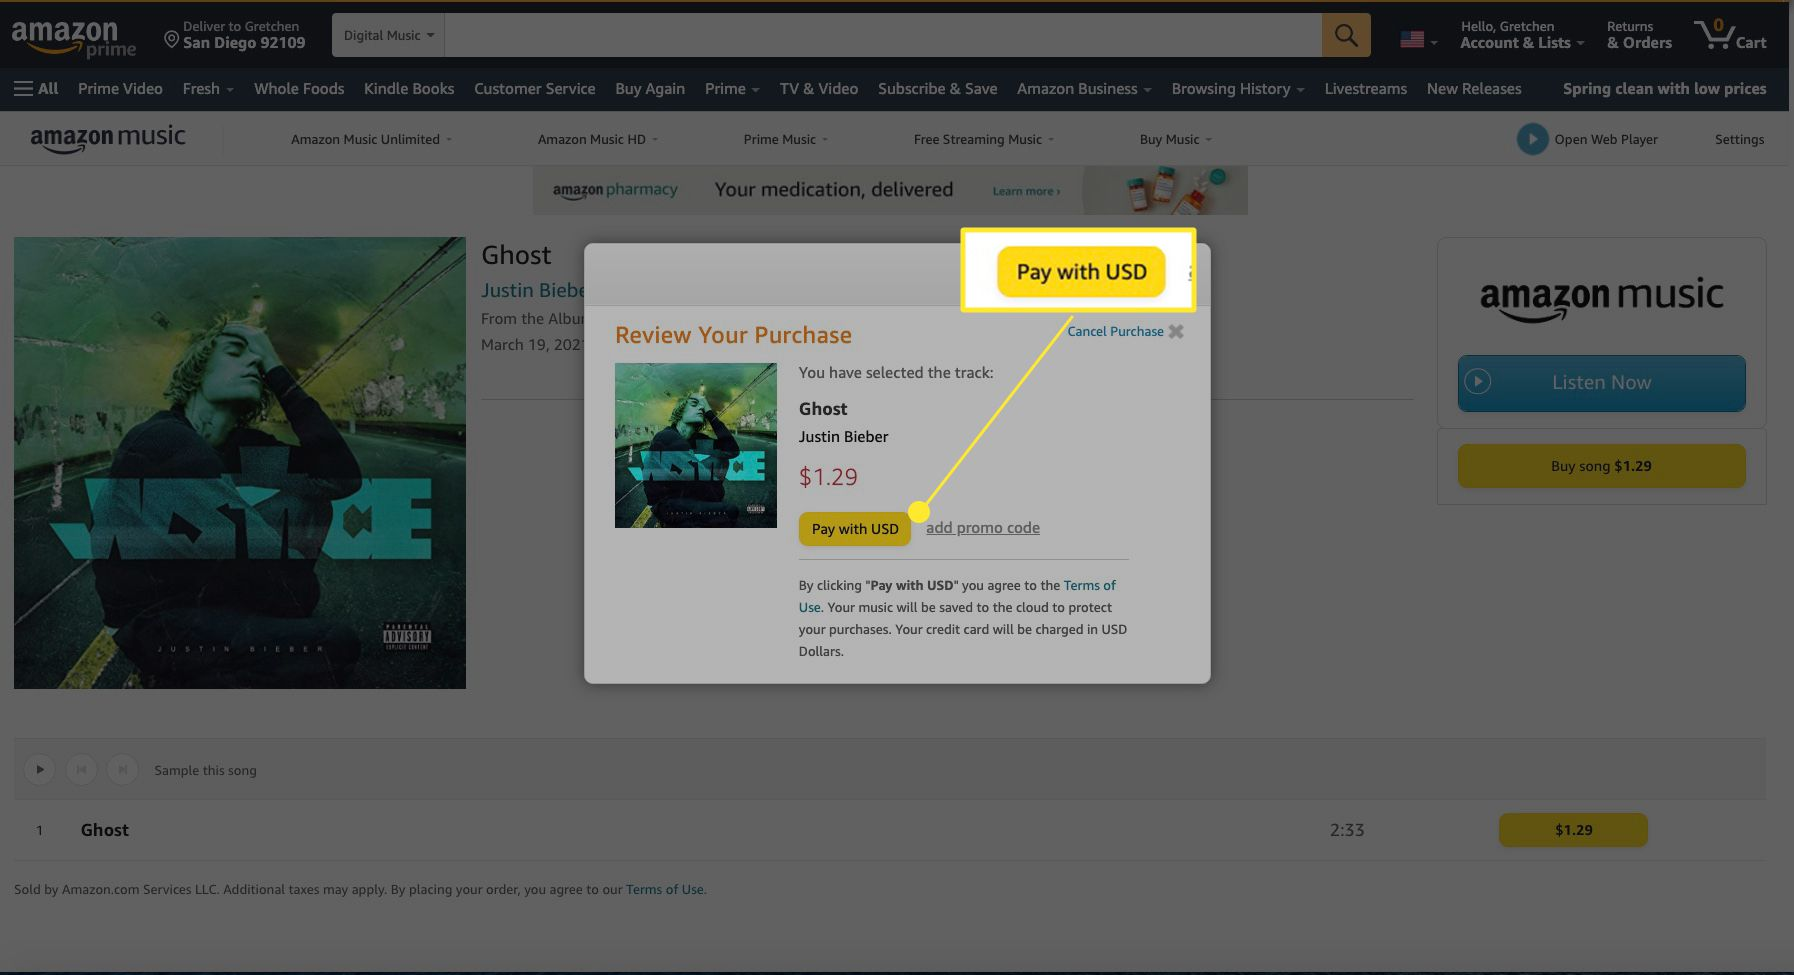 Amazon Music song purchase with Pay With USD highlighted